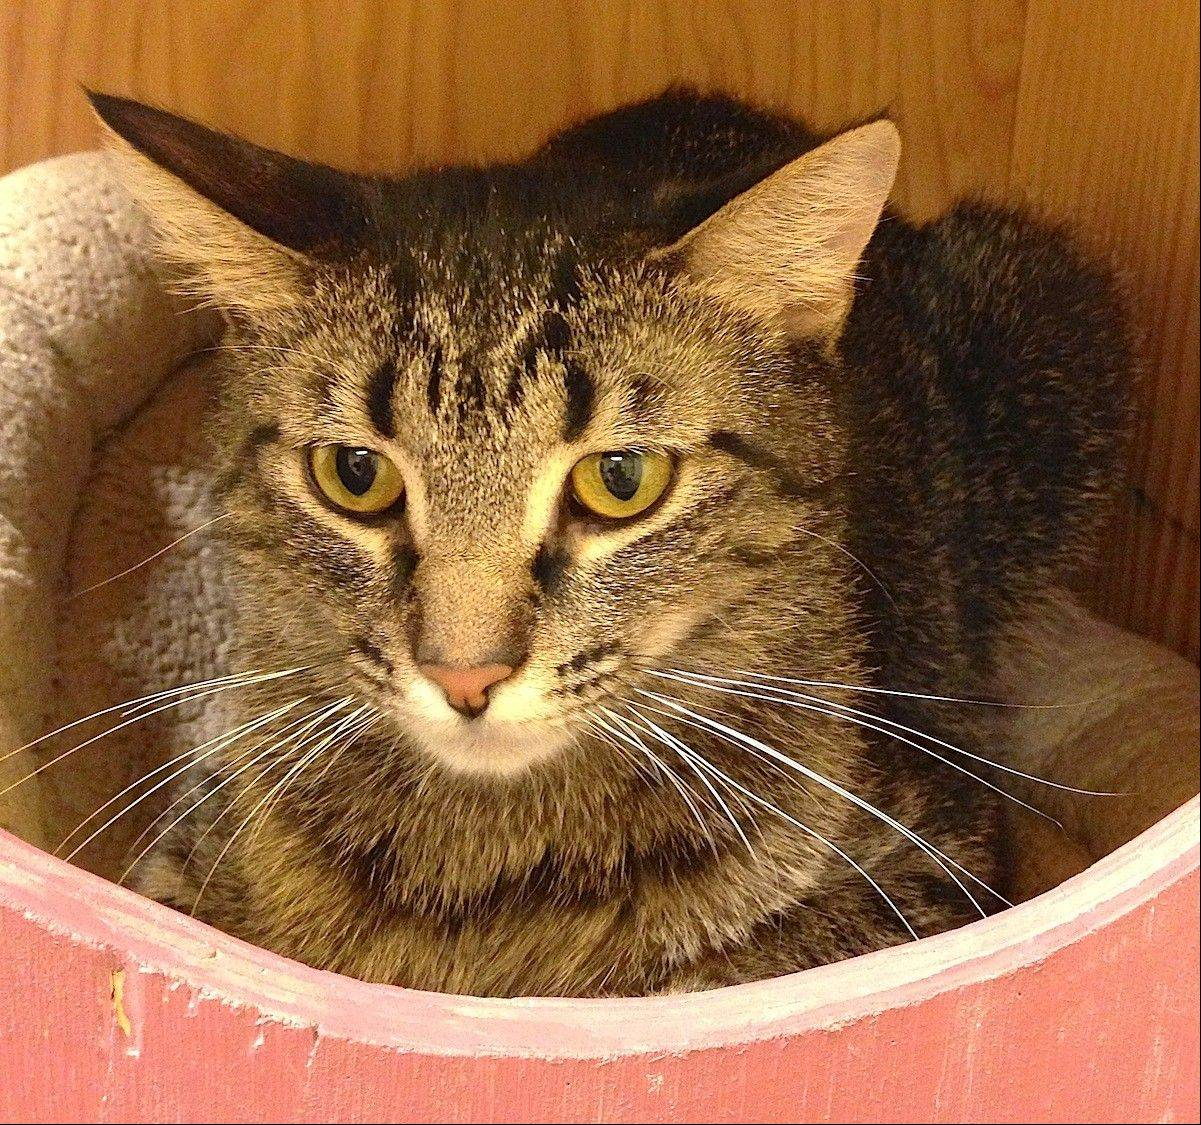 Sweetie, a domestic longhair female, is a loving 2-year-old.